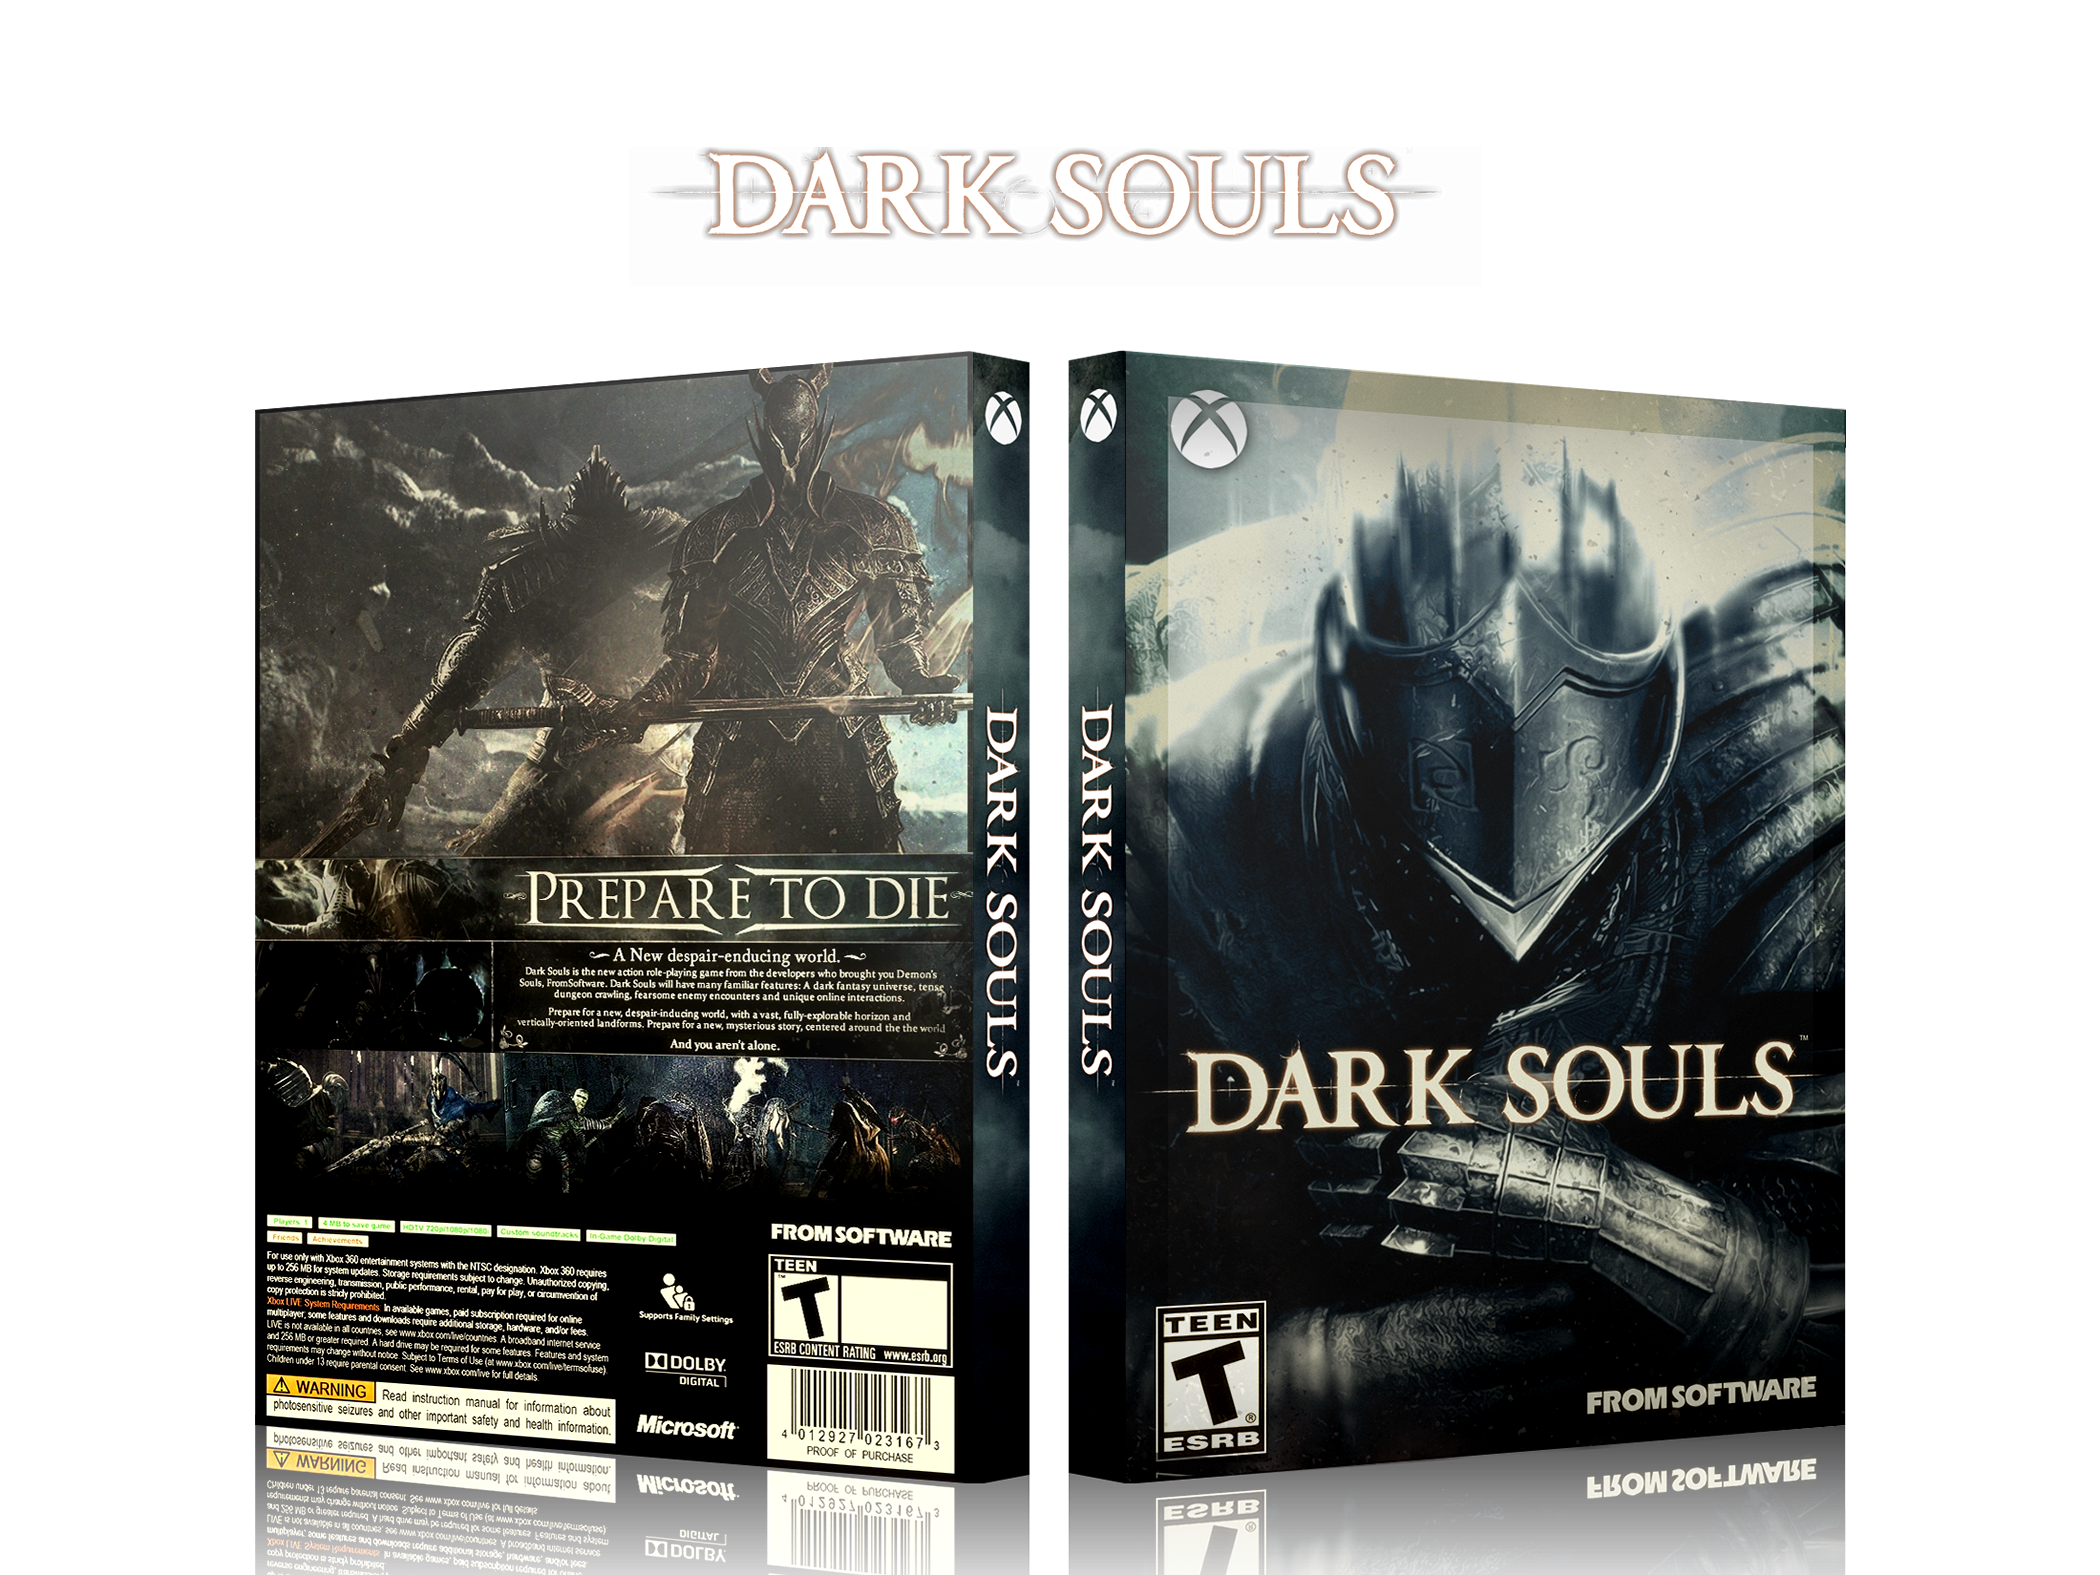 Dark Souls box cover